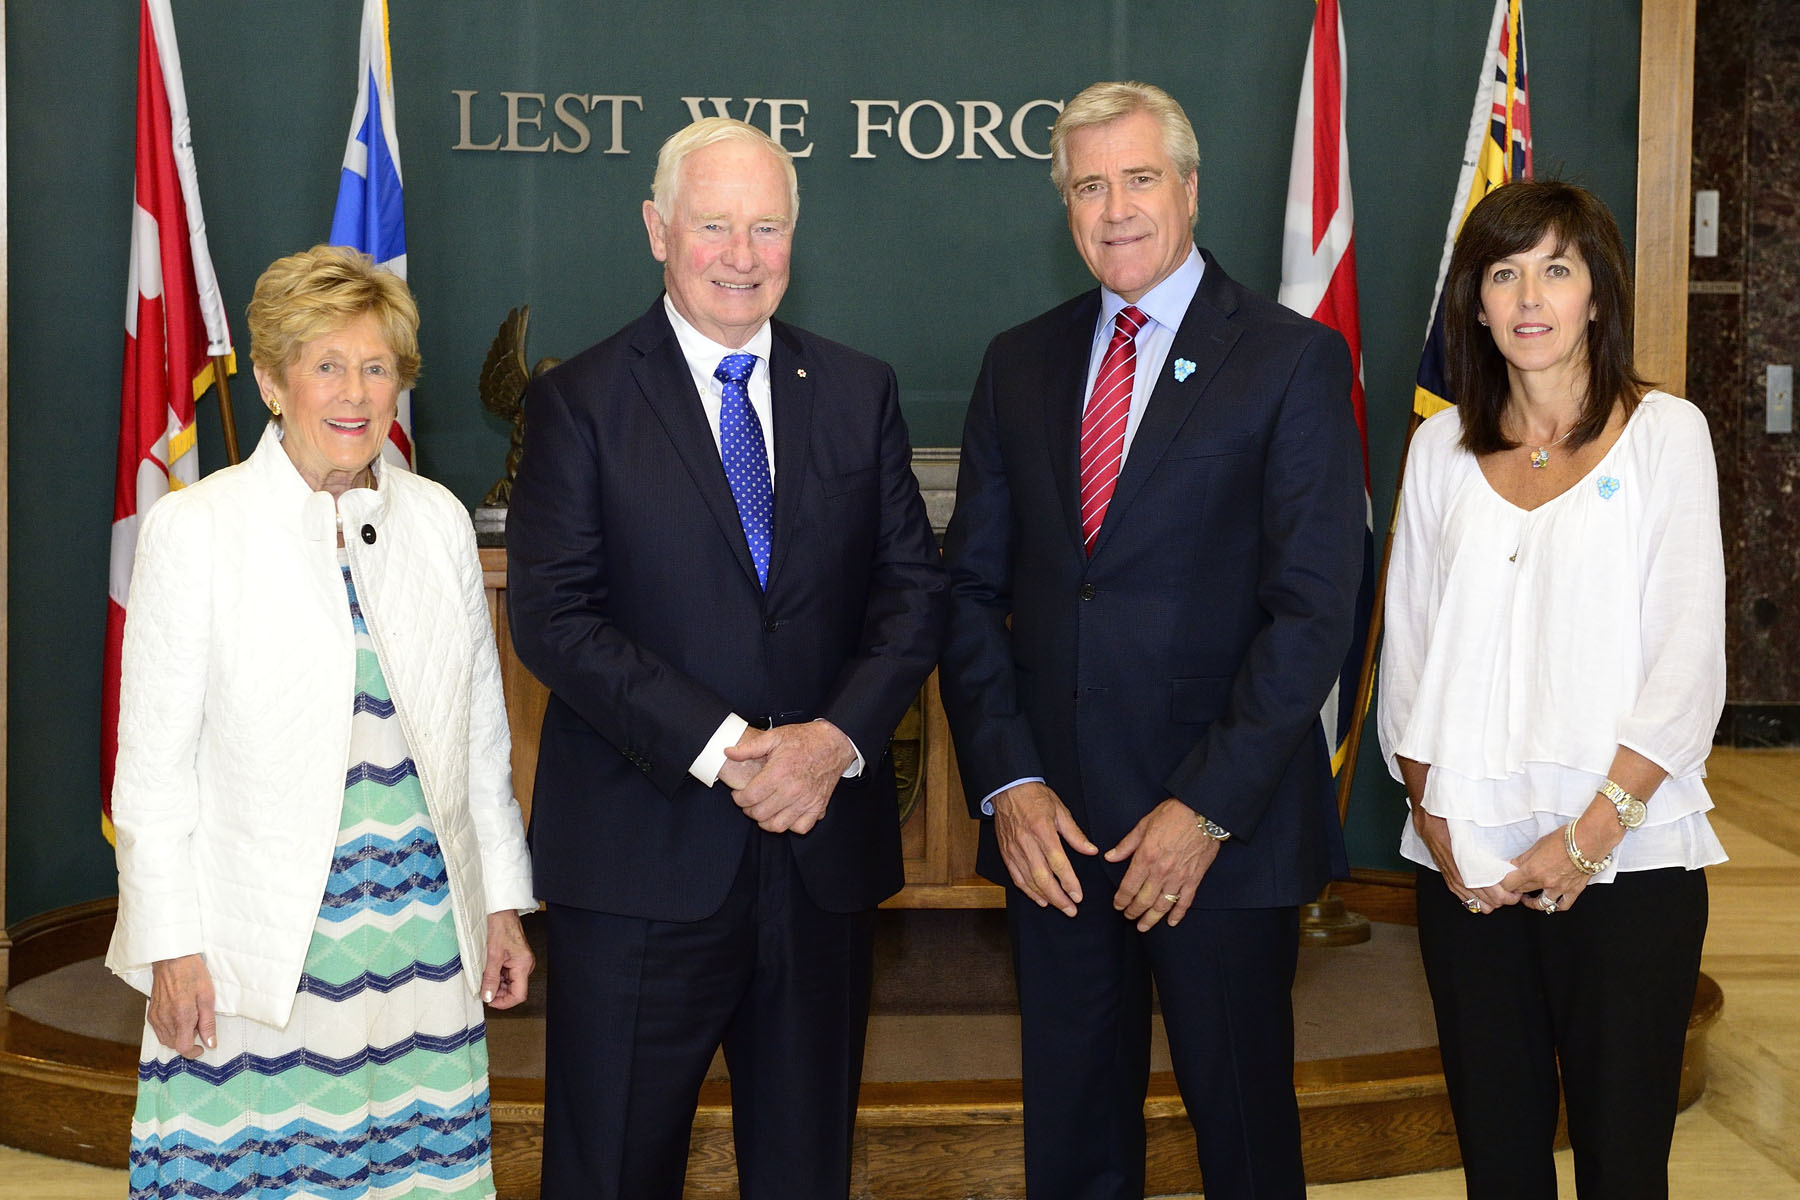 Their Excellencies the Right Honourable David Johnston, Governor General of Canada, and Mrs. Sharon Johnston met with the Honourable Dwight Ball, Premier of Newfoundland and Labrador, and Mrs. Sharon Ball.